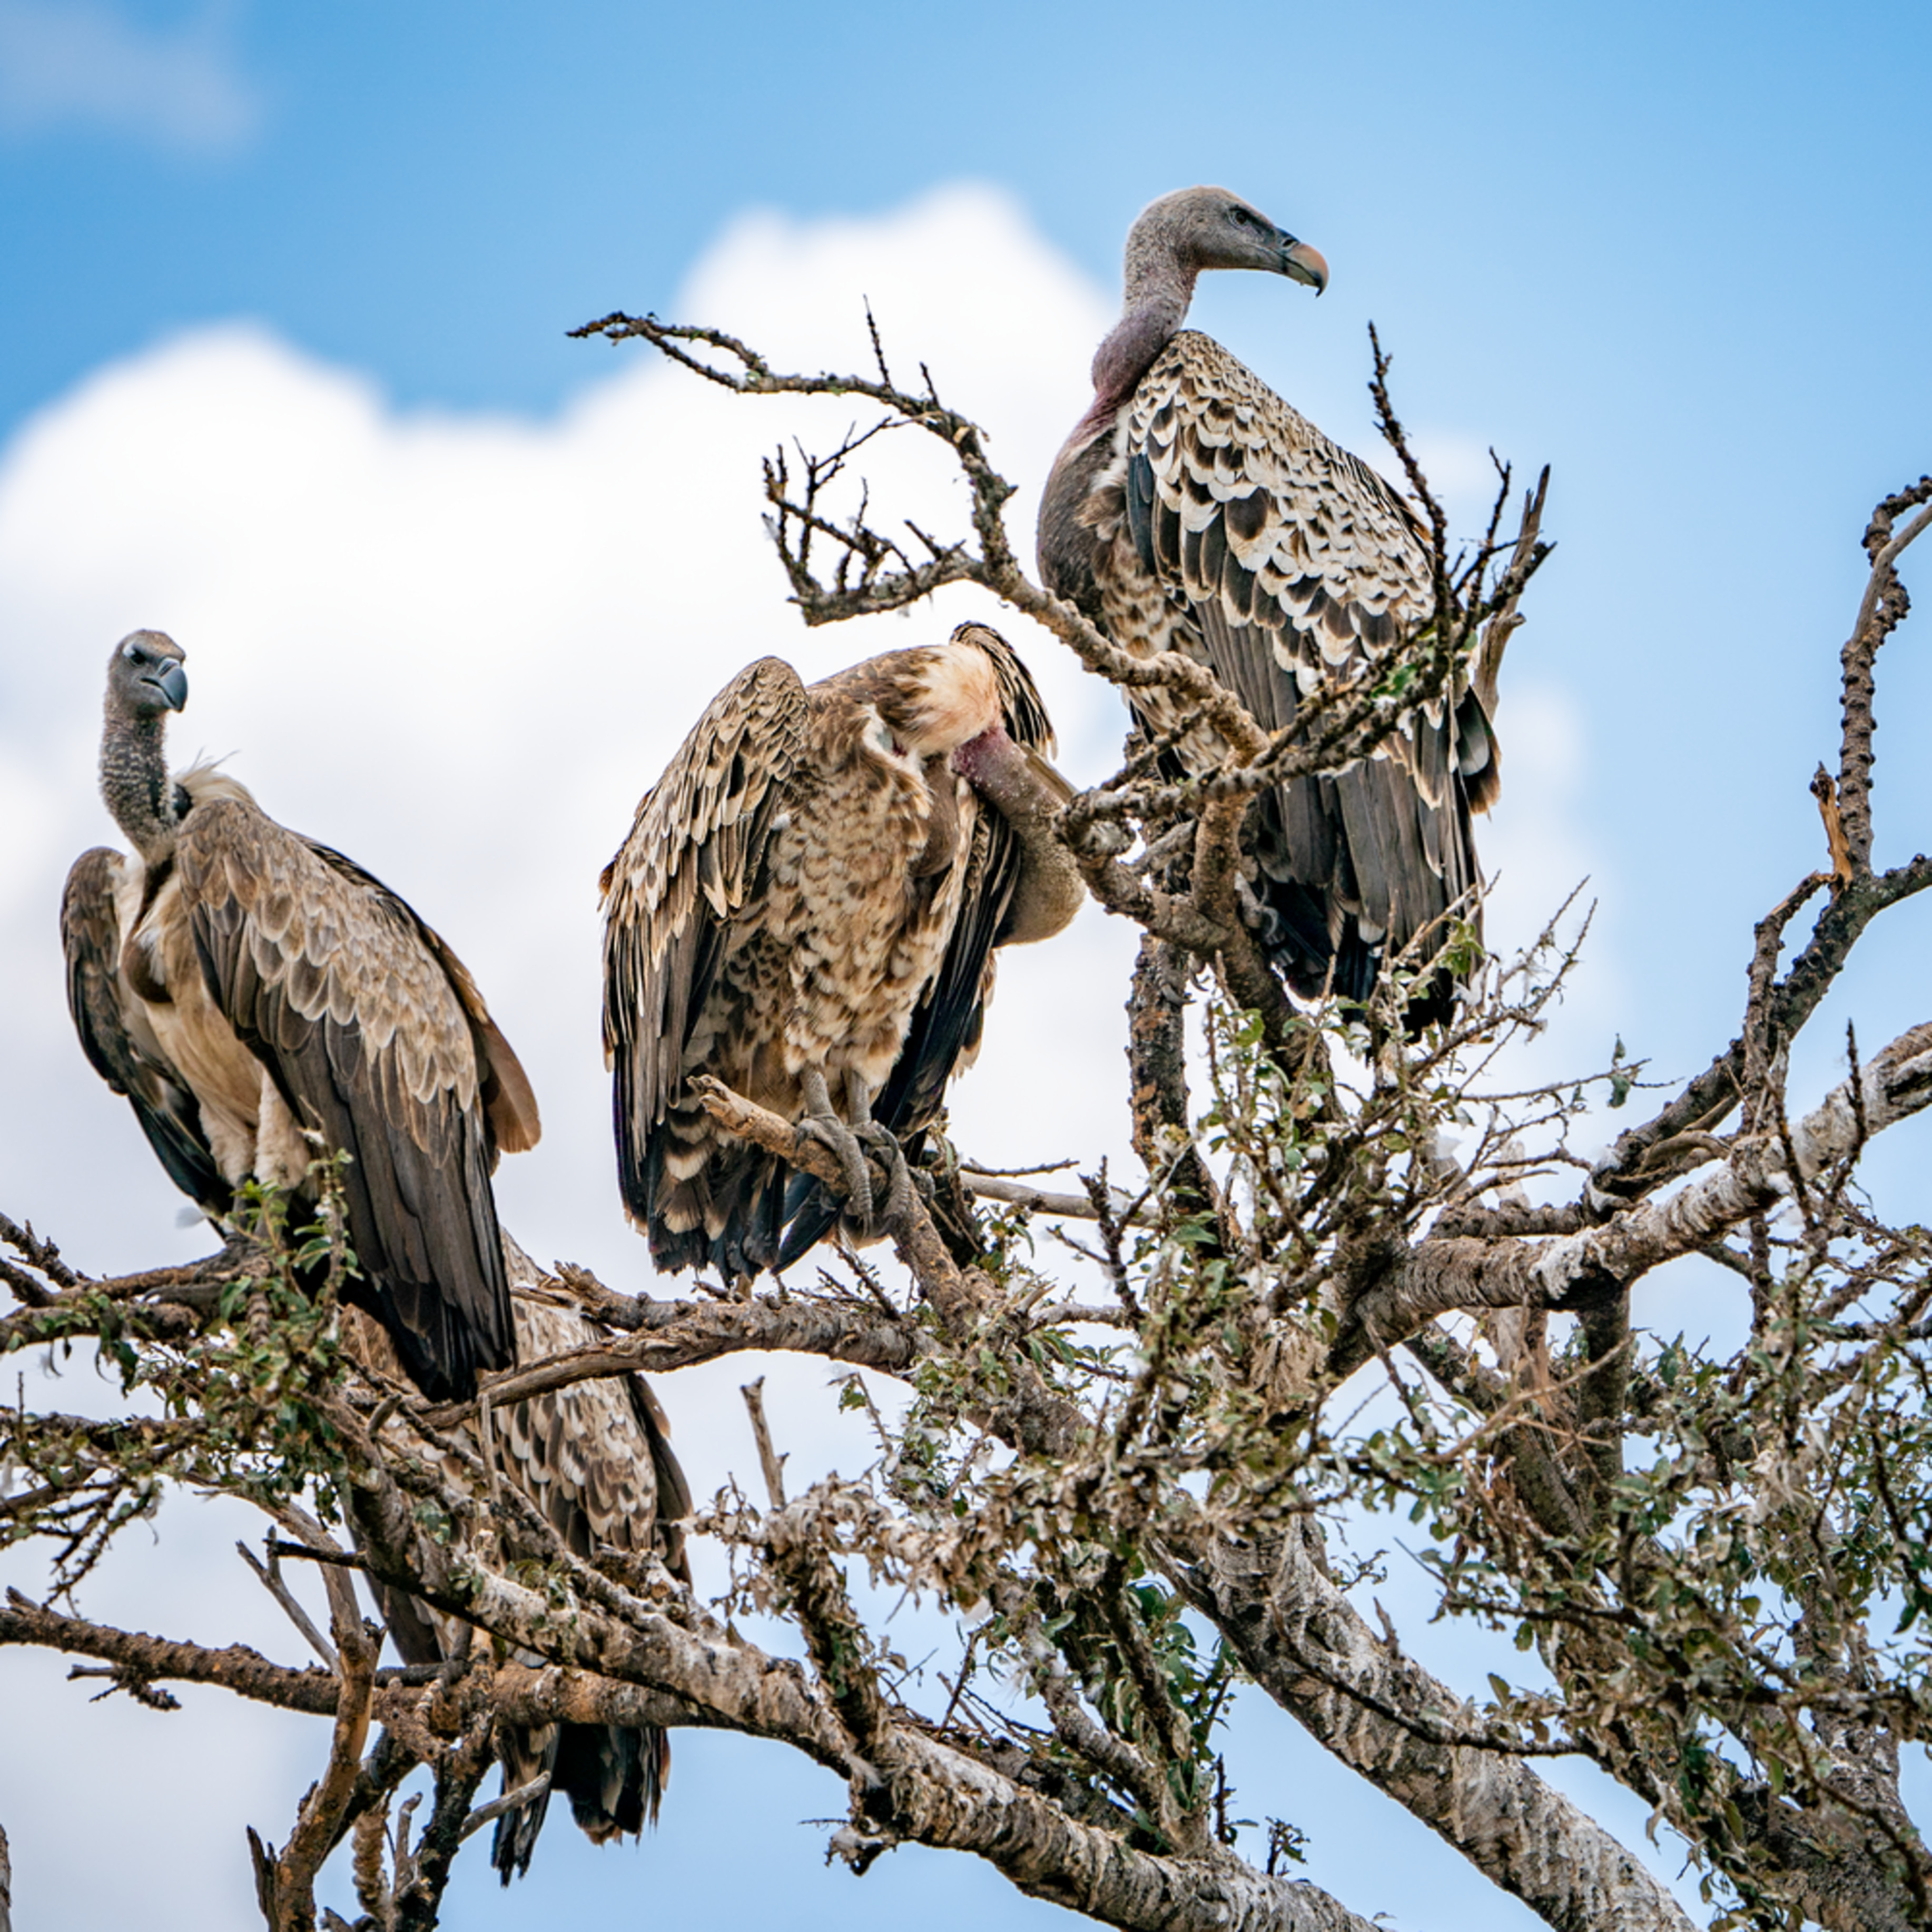 African white backed vultures in a tree 1 asf tifs full size unsigned 2 crvqwt